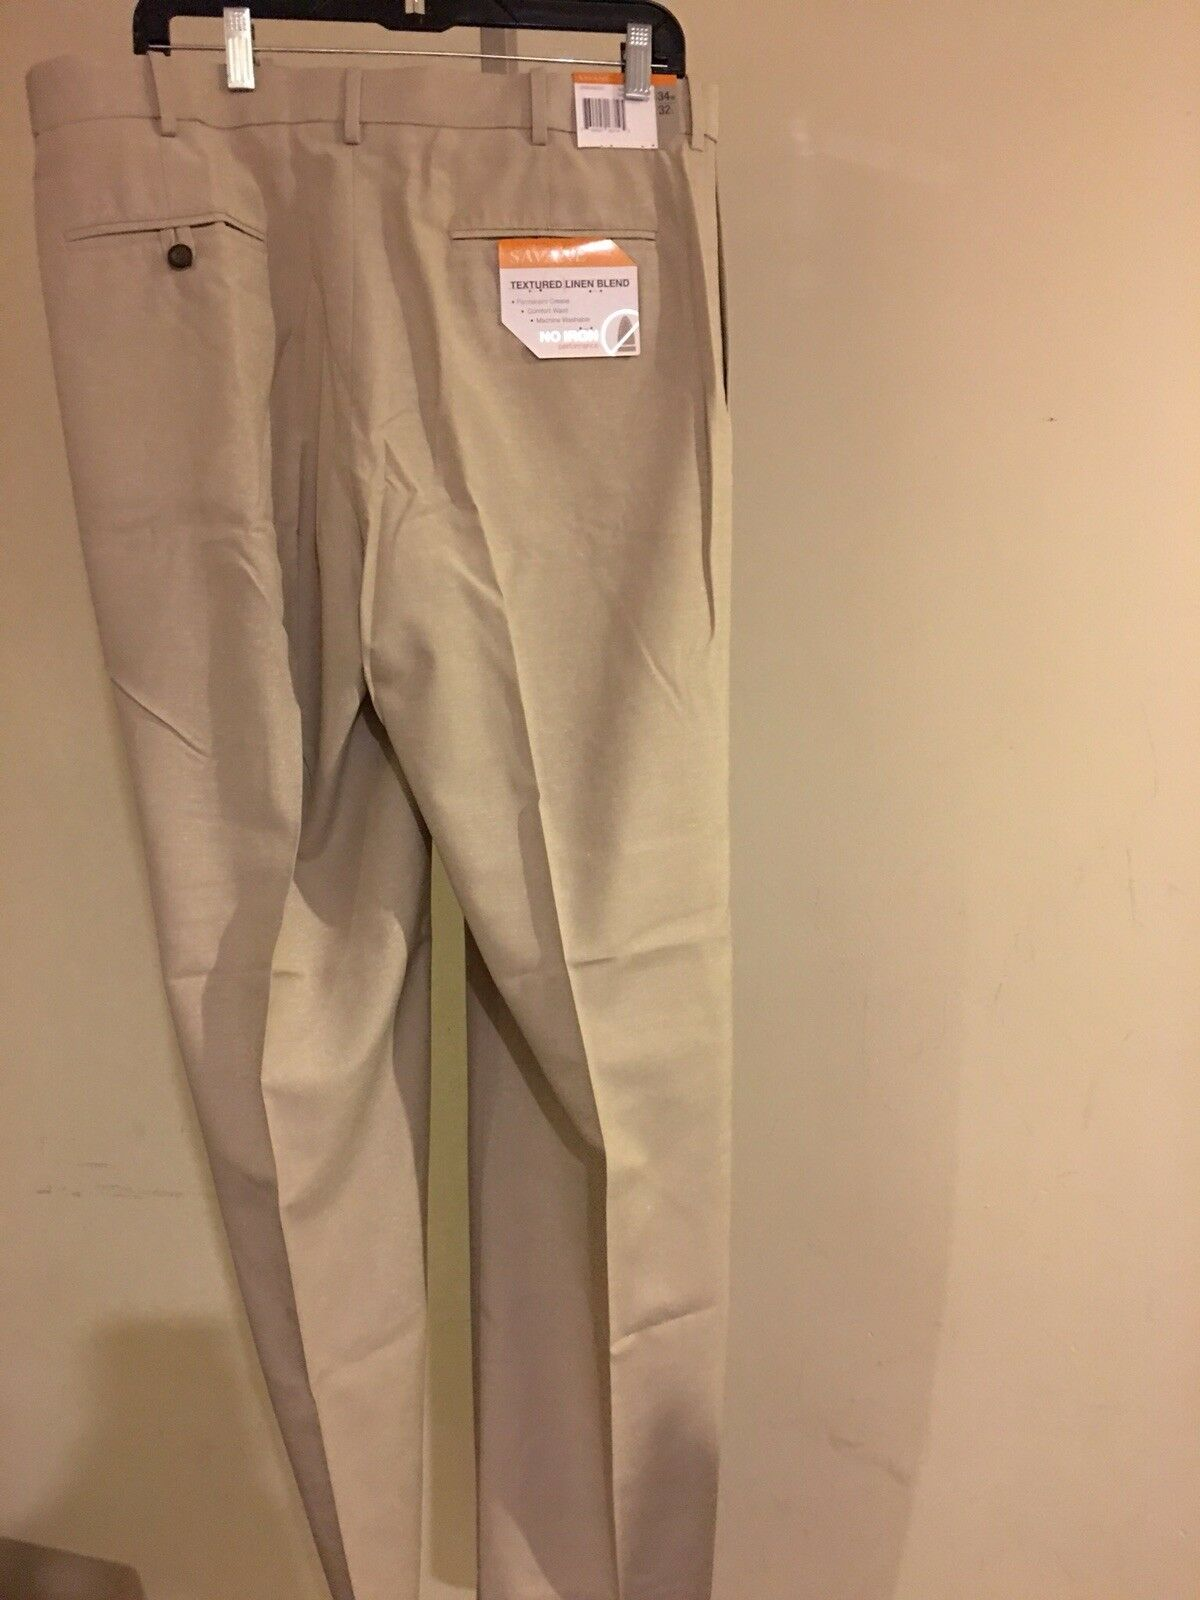 Savane Men's Performance Linen Pants Natural 34W x 32L